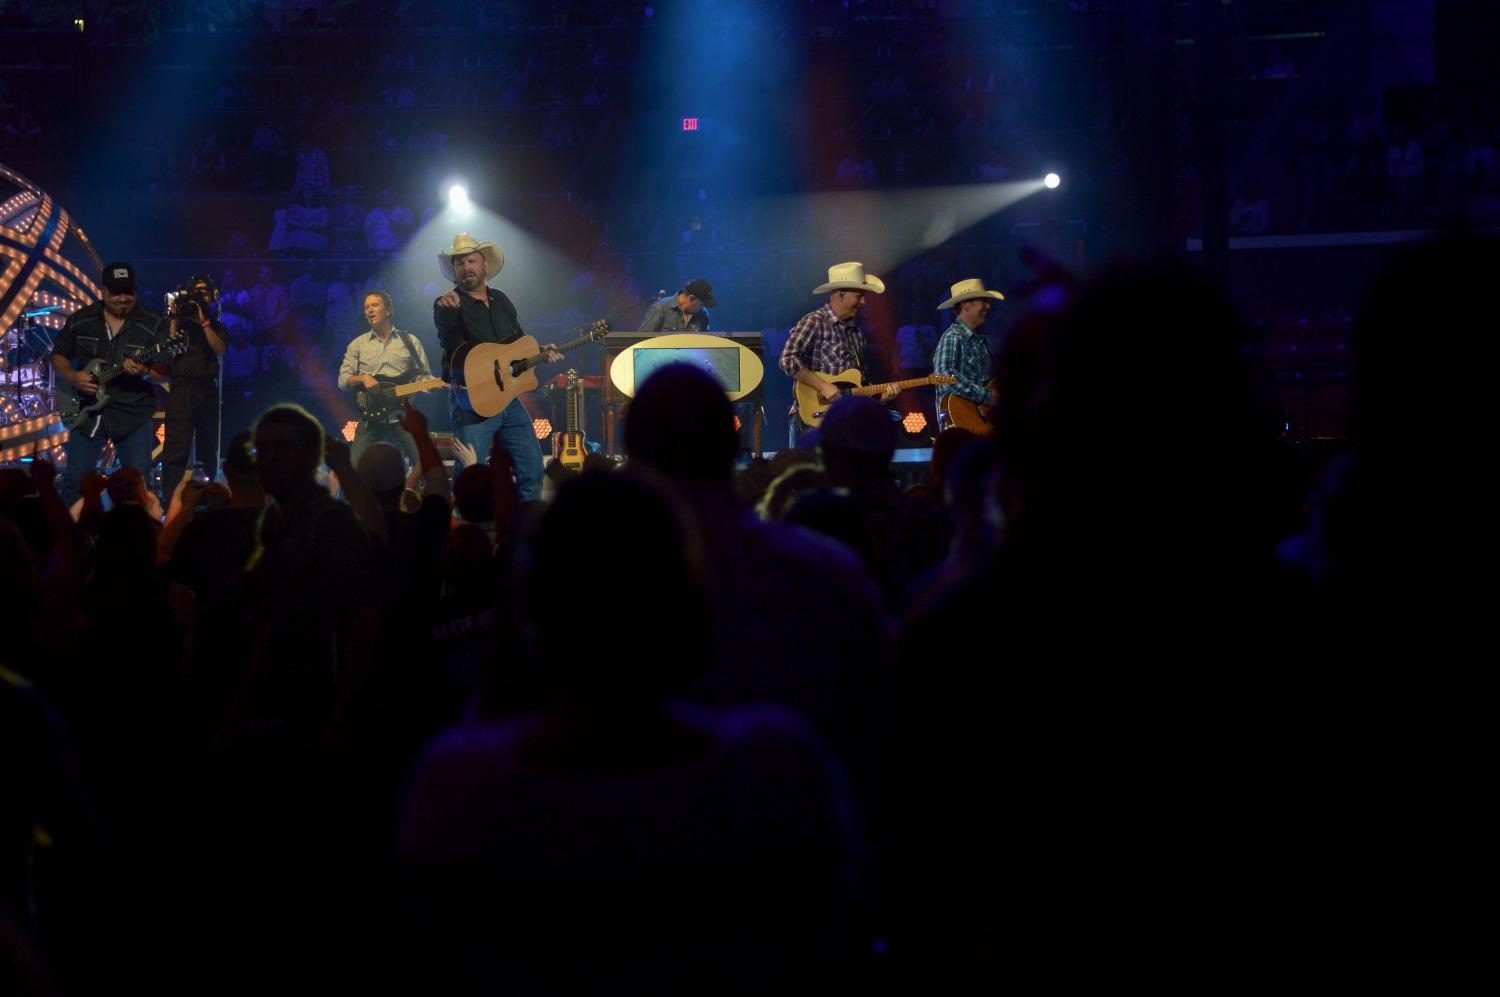 Garth+Brooks+performs+at+State+Farm+Center+on+Friday.+Brooks+performed+nearly+four+hours+for+his+Friday+night+show.